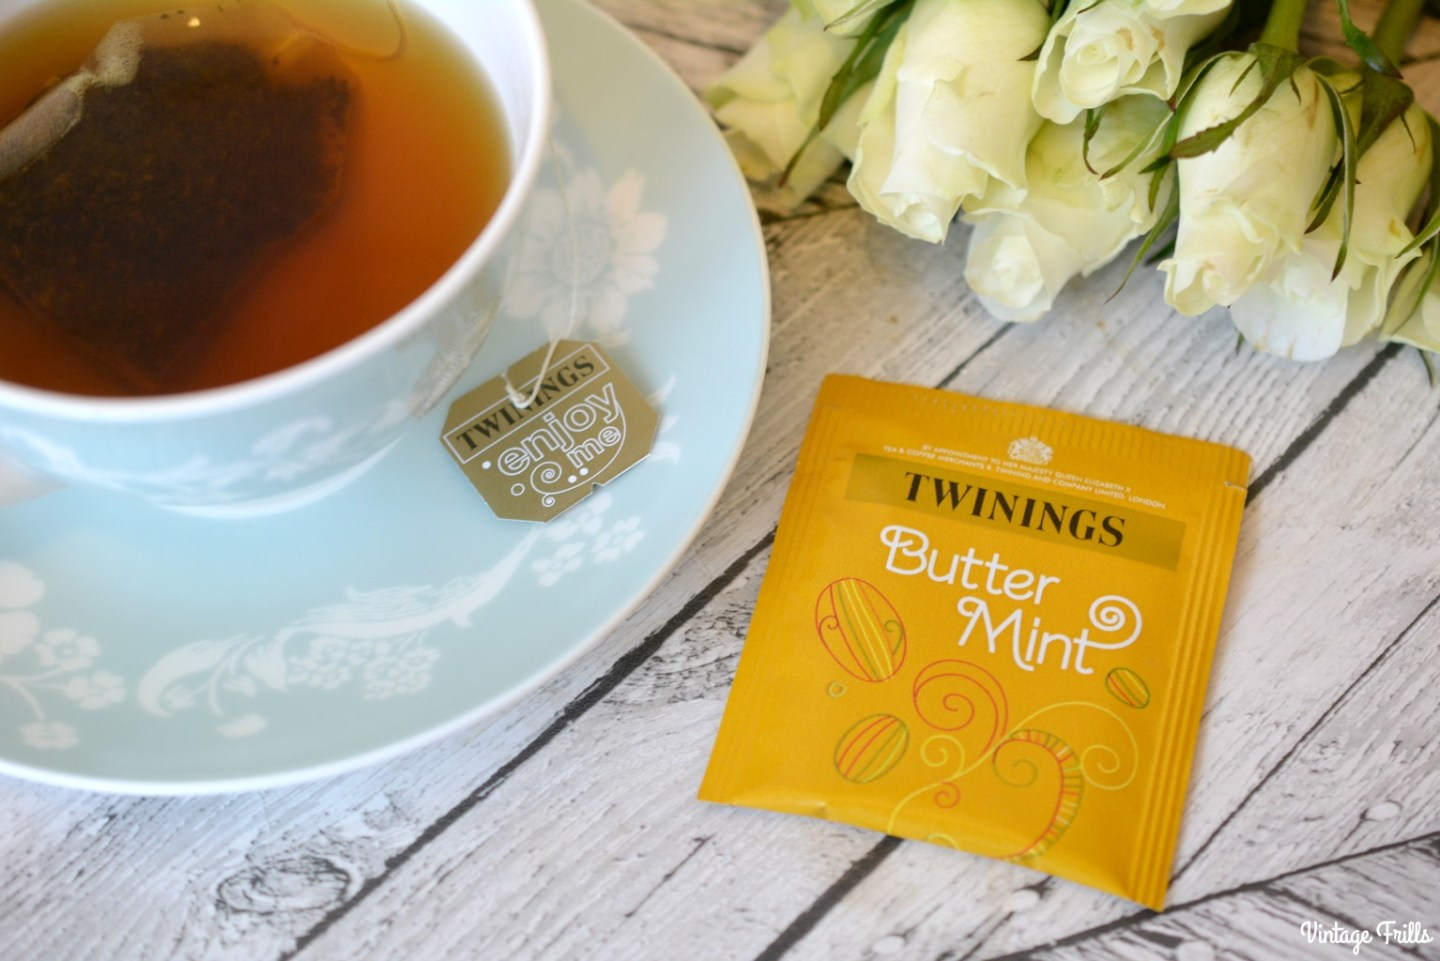 Favourite Tea - Twinings Butter Mint